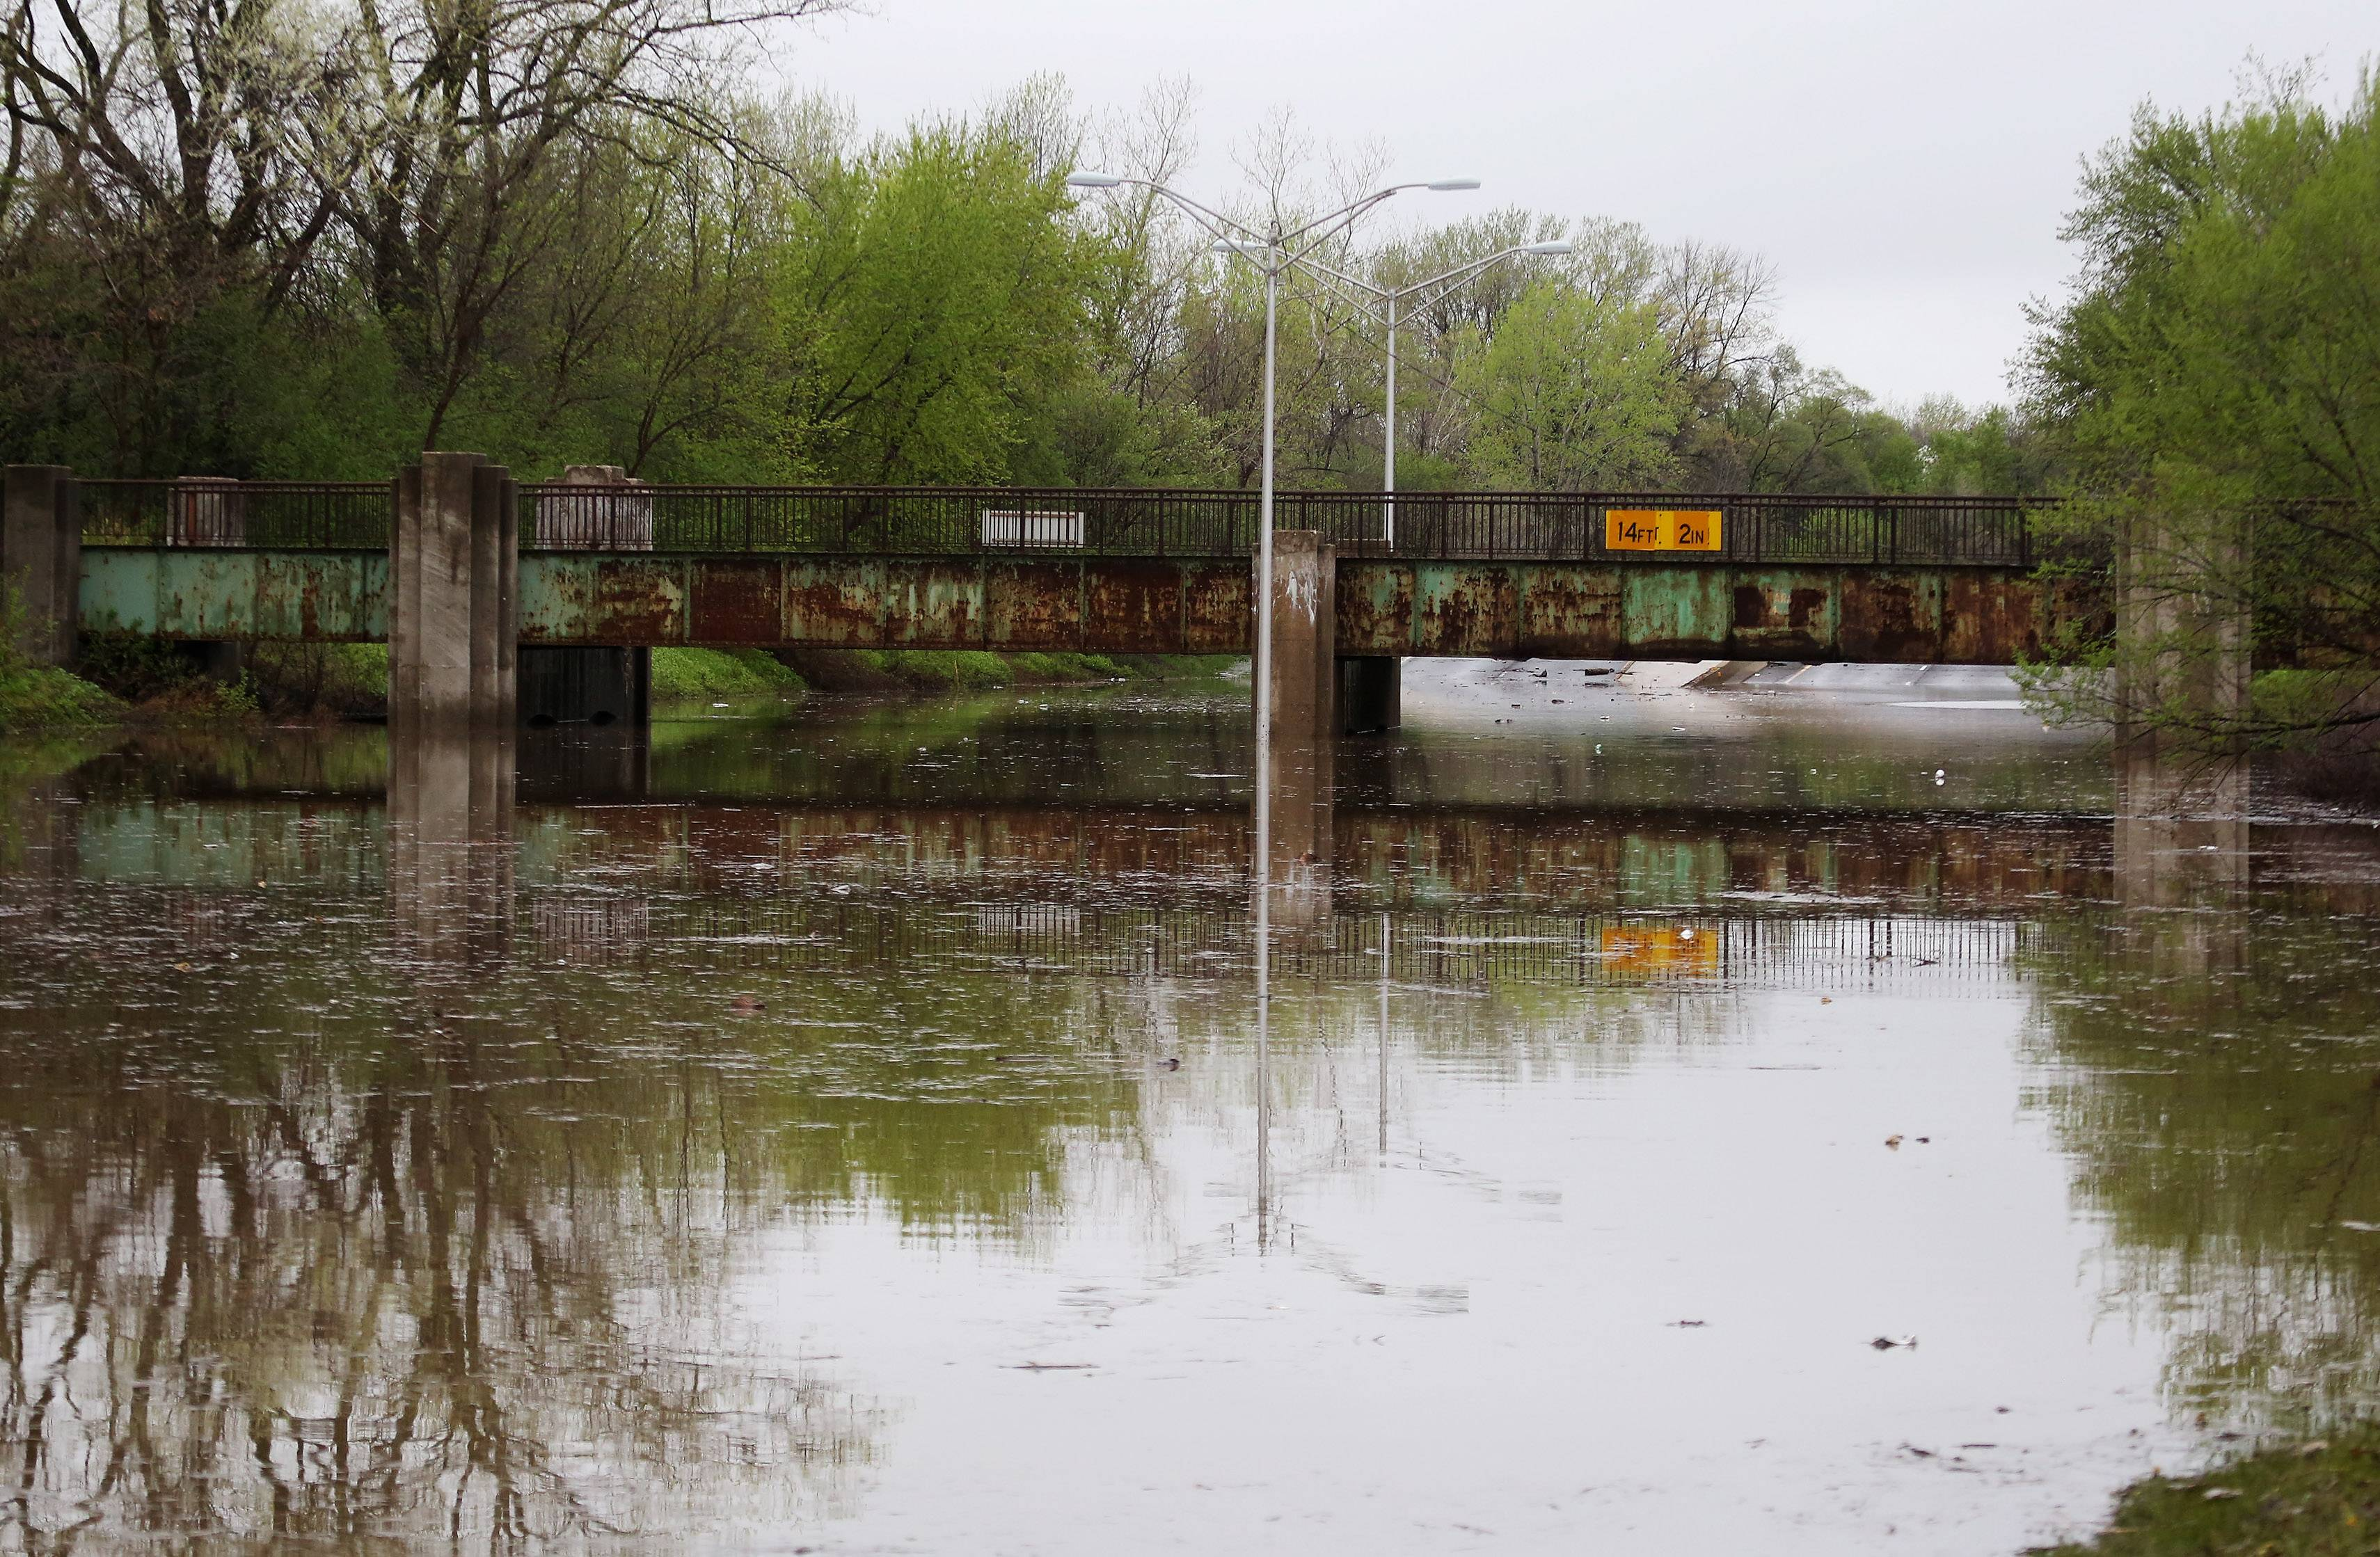 The train underpass on Route 41 north of Route 176 in Lake Bluff was flooded Tuesday. Overnight storms caused area flooding and traffic problems in Lake County.